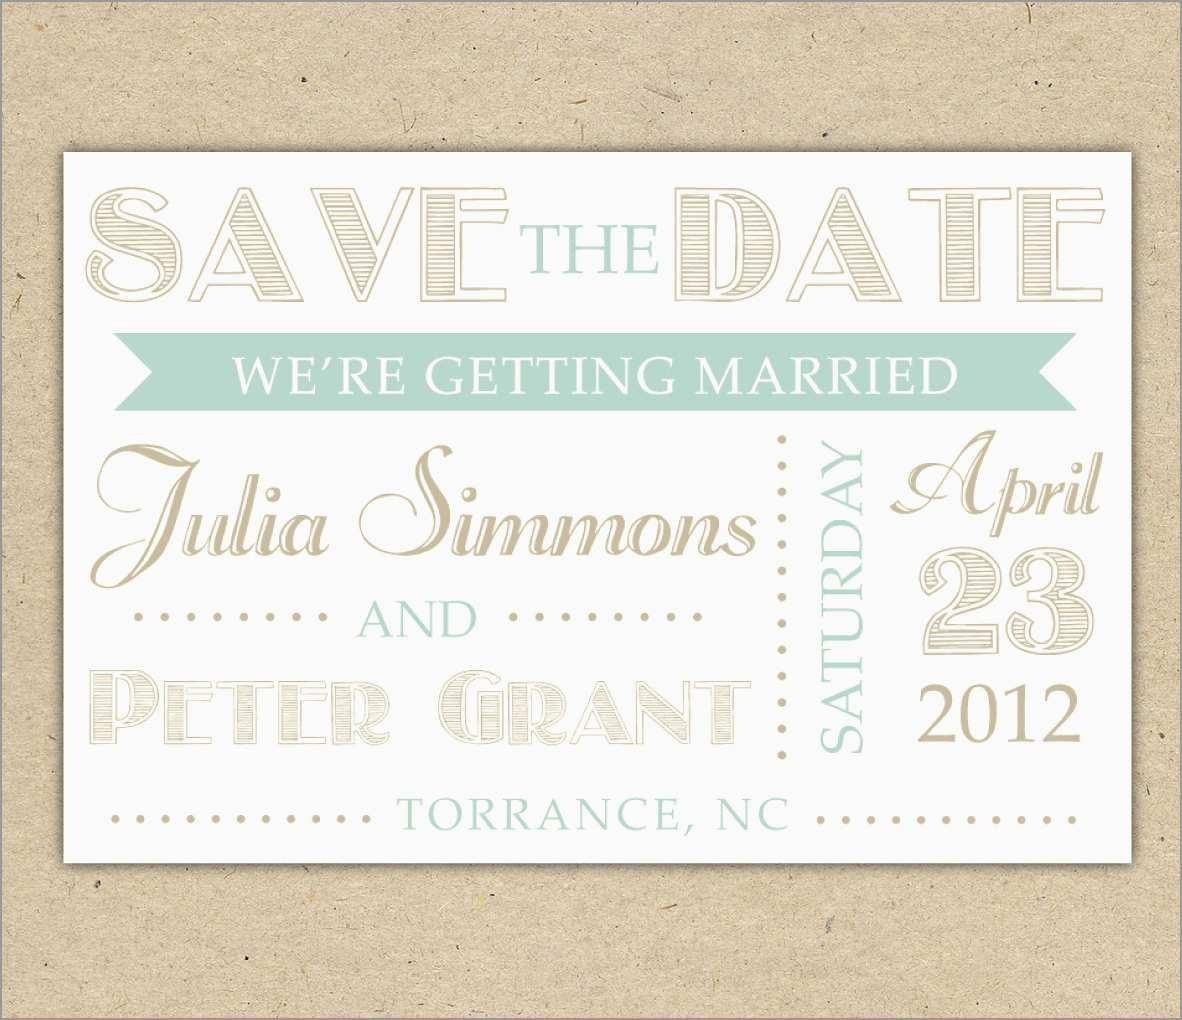 New Free Printable Save The Date Invitation Templates | Best Of Template - Free Printable Save The Date Templates